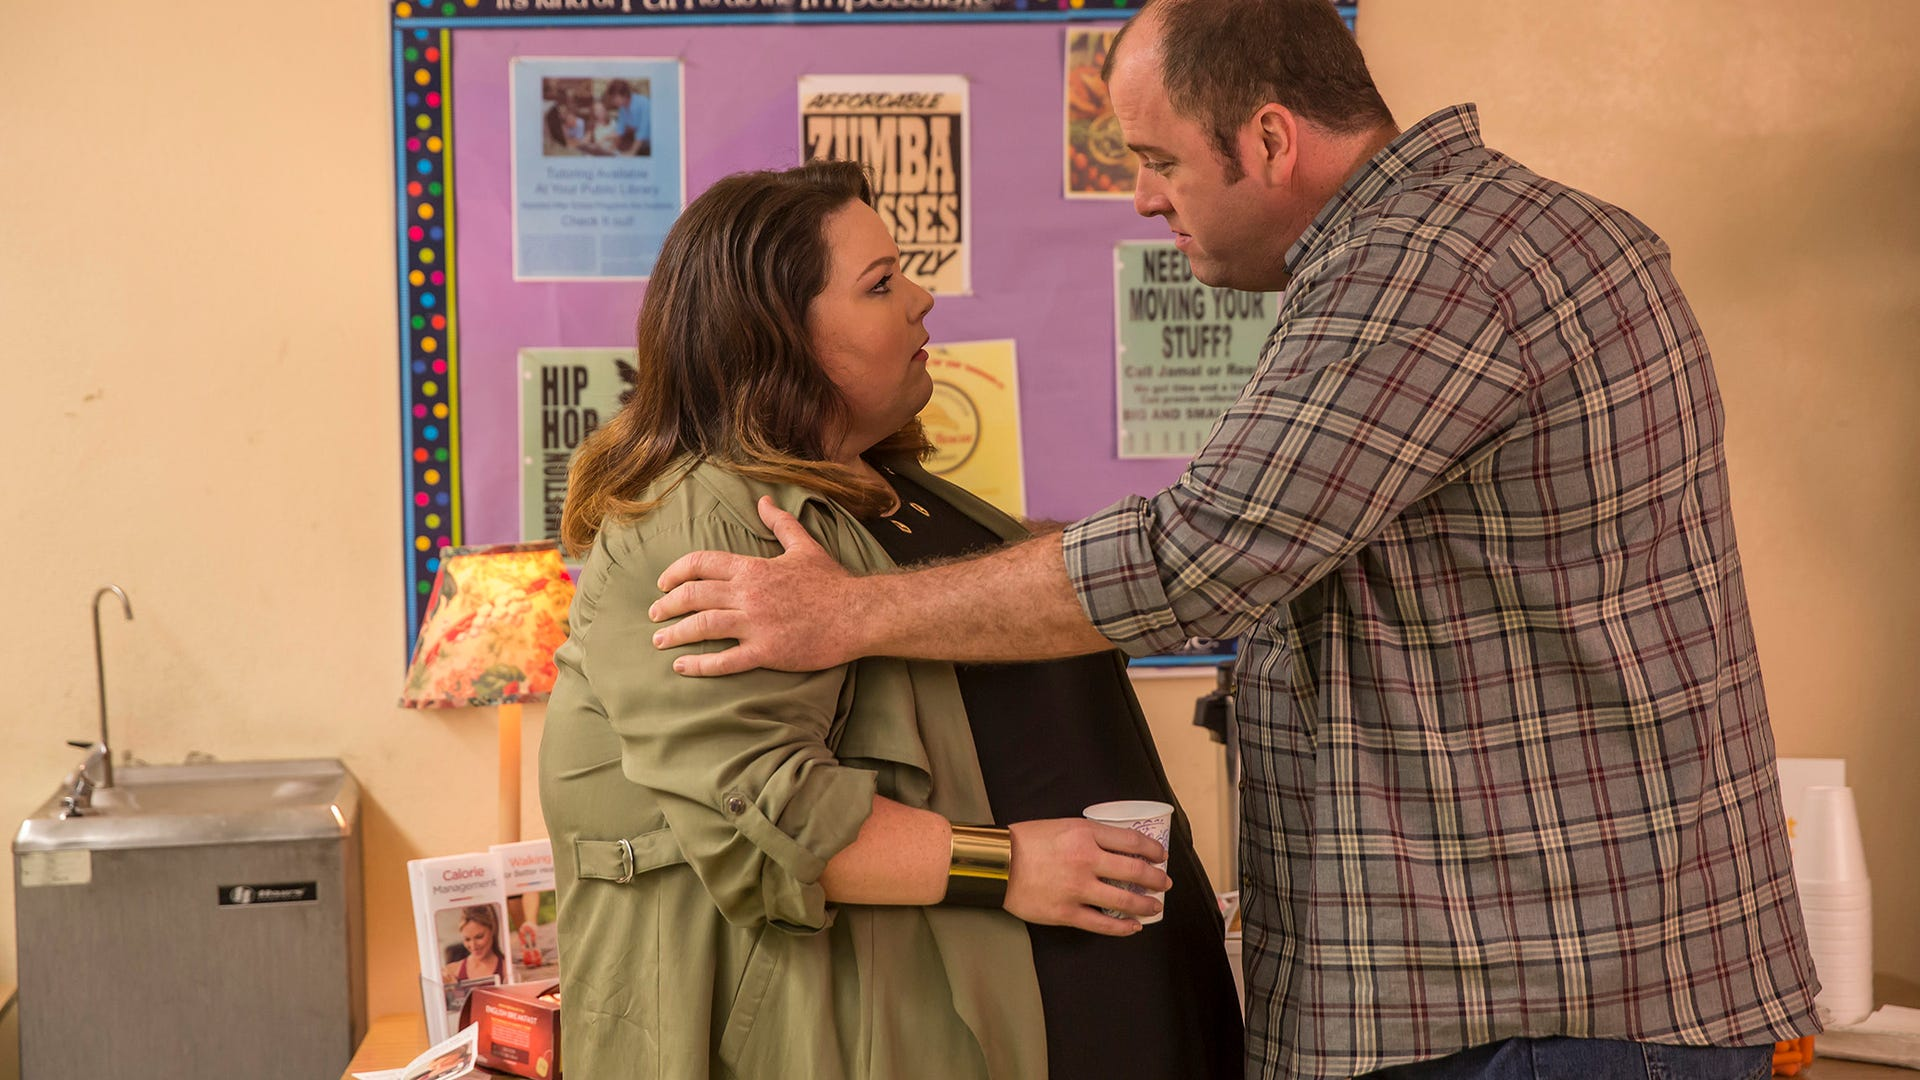 Chrissy Metz as Kate and Chris Sullivan as Toby, This Is Us